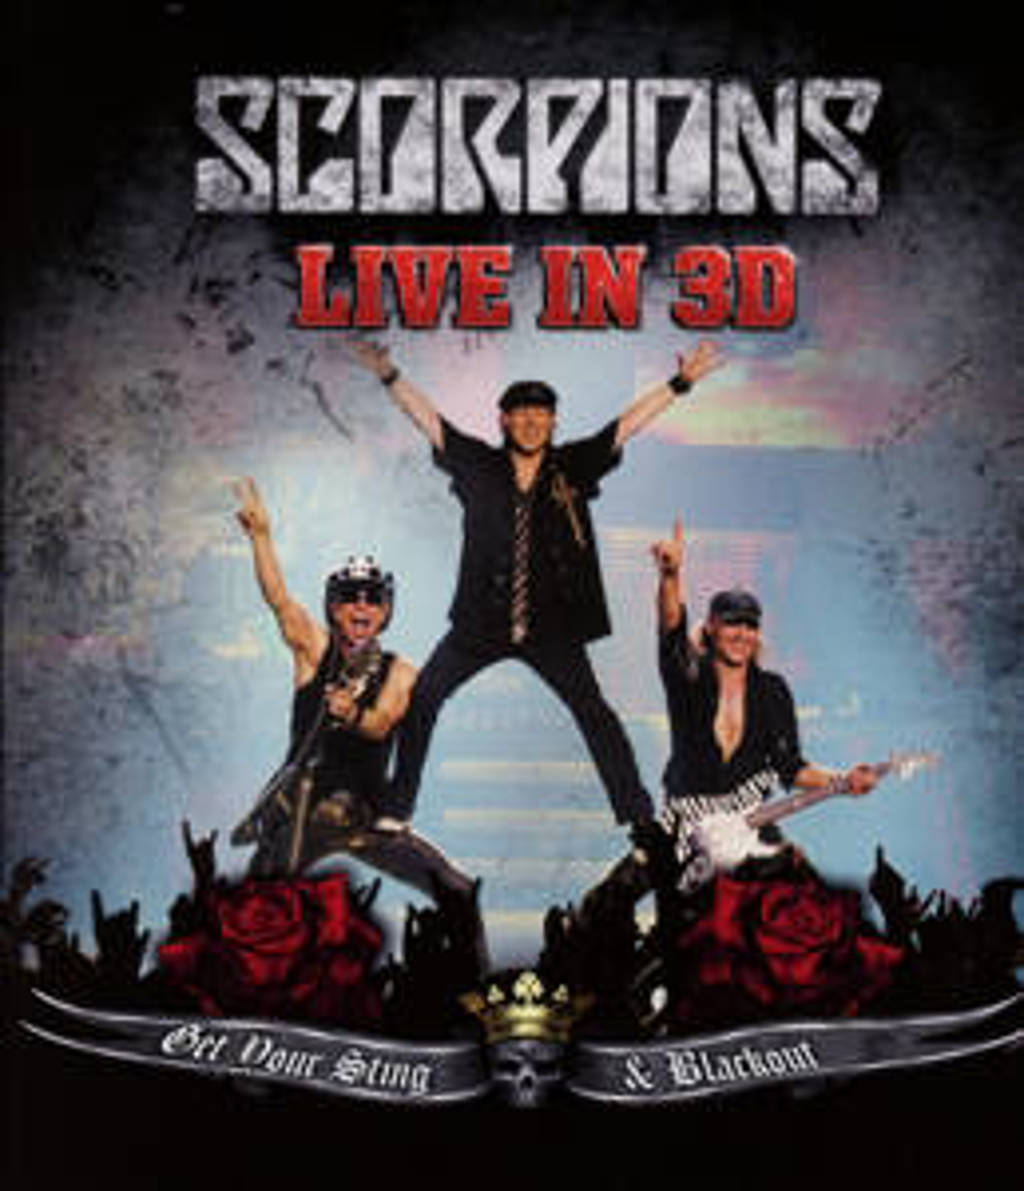 Scorpions - Get Your Sting And Blackout Li (Blu-ray)